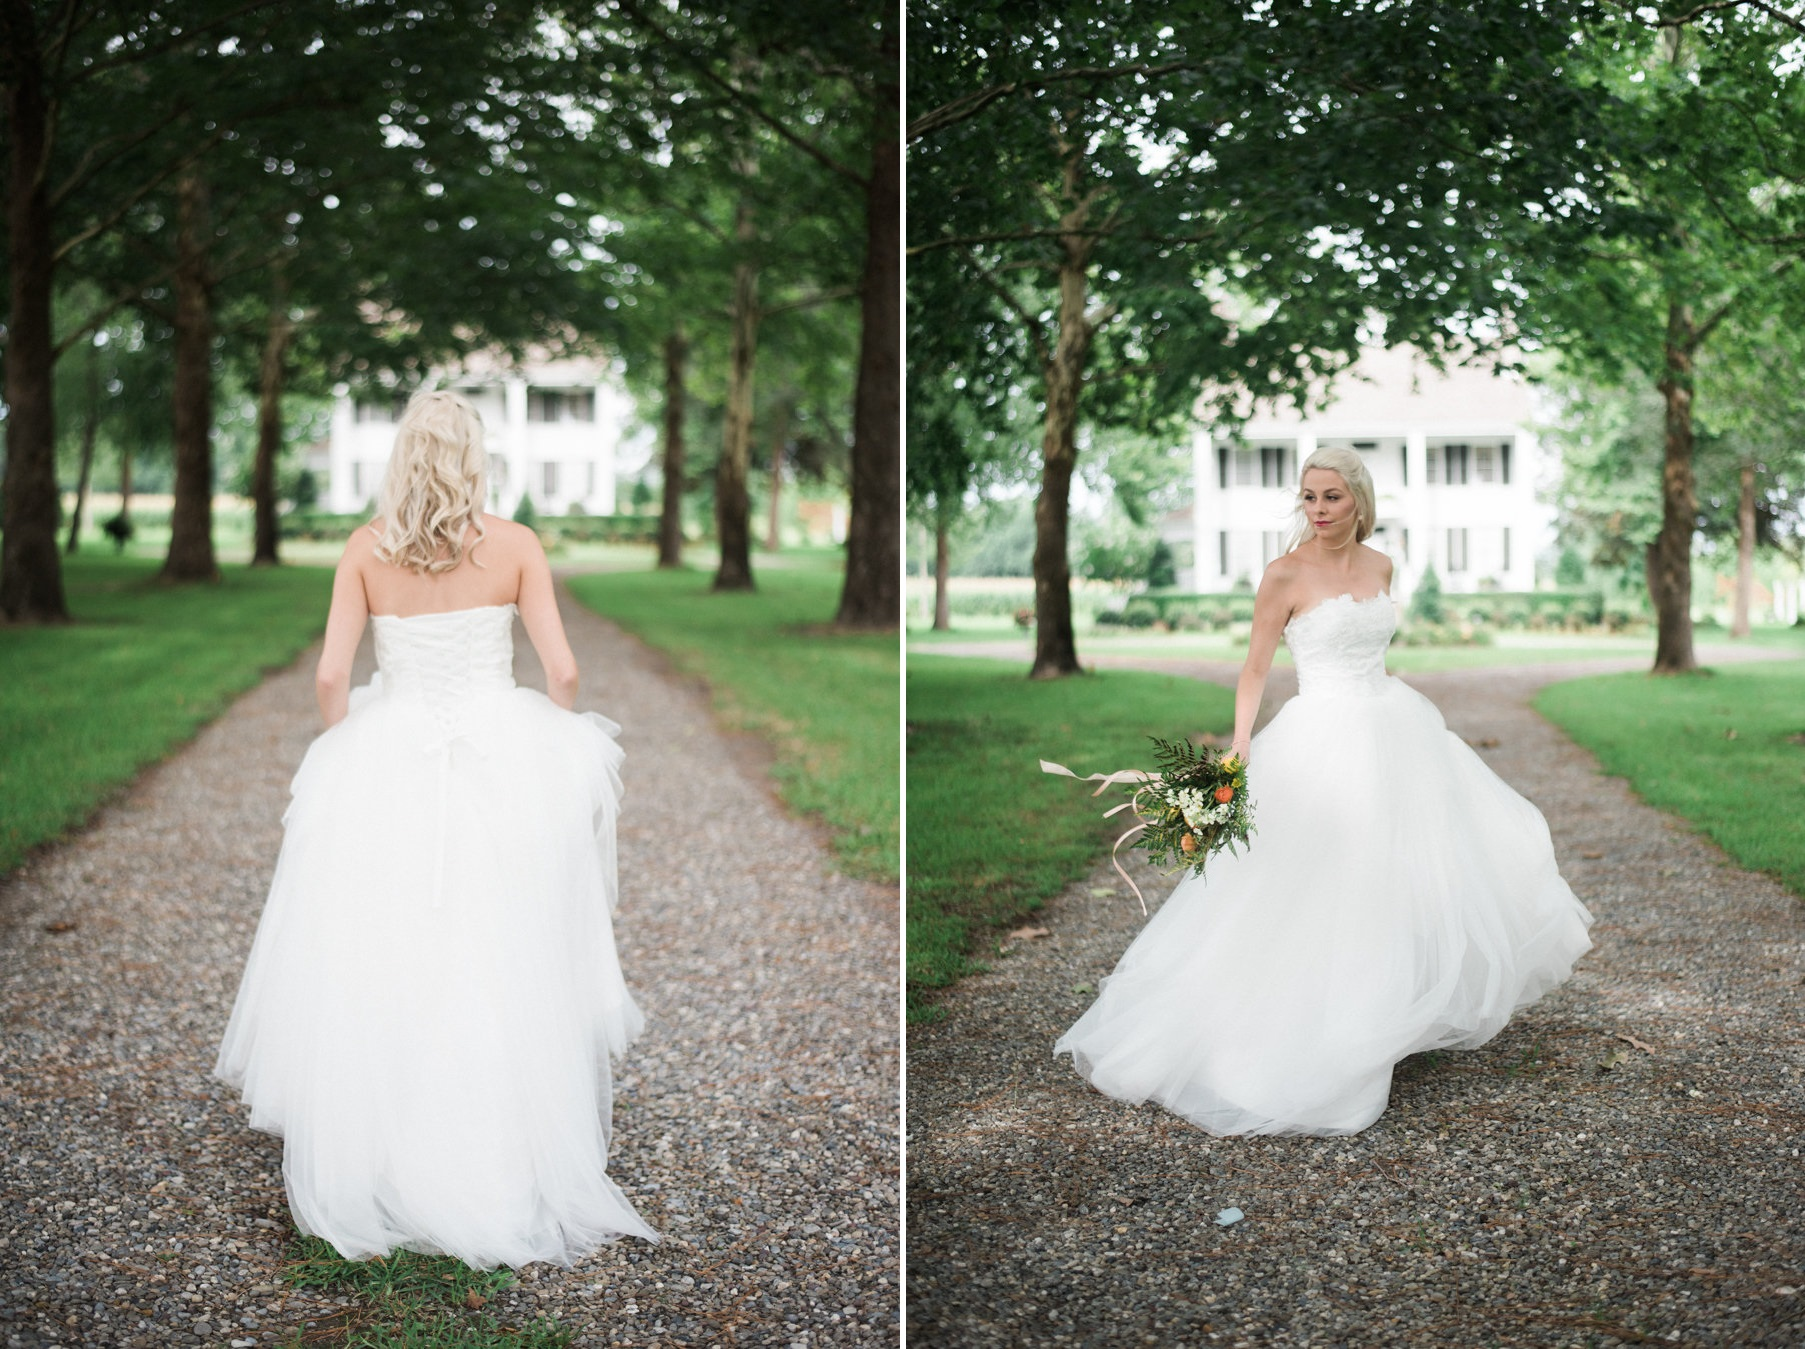 Southern Bride at The Palo Alto Plantation Wedding Venue